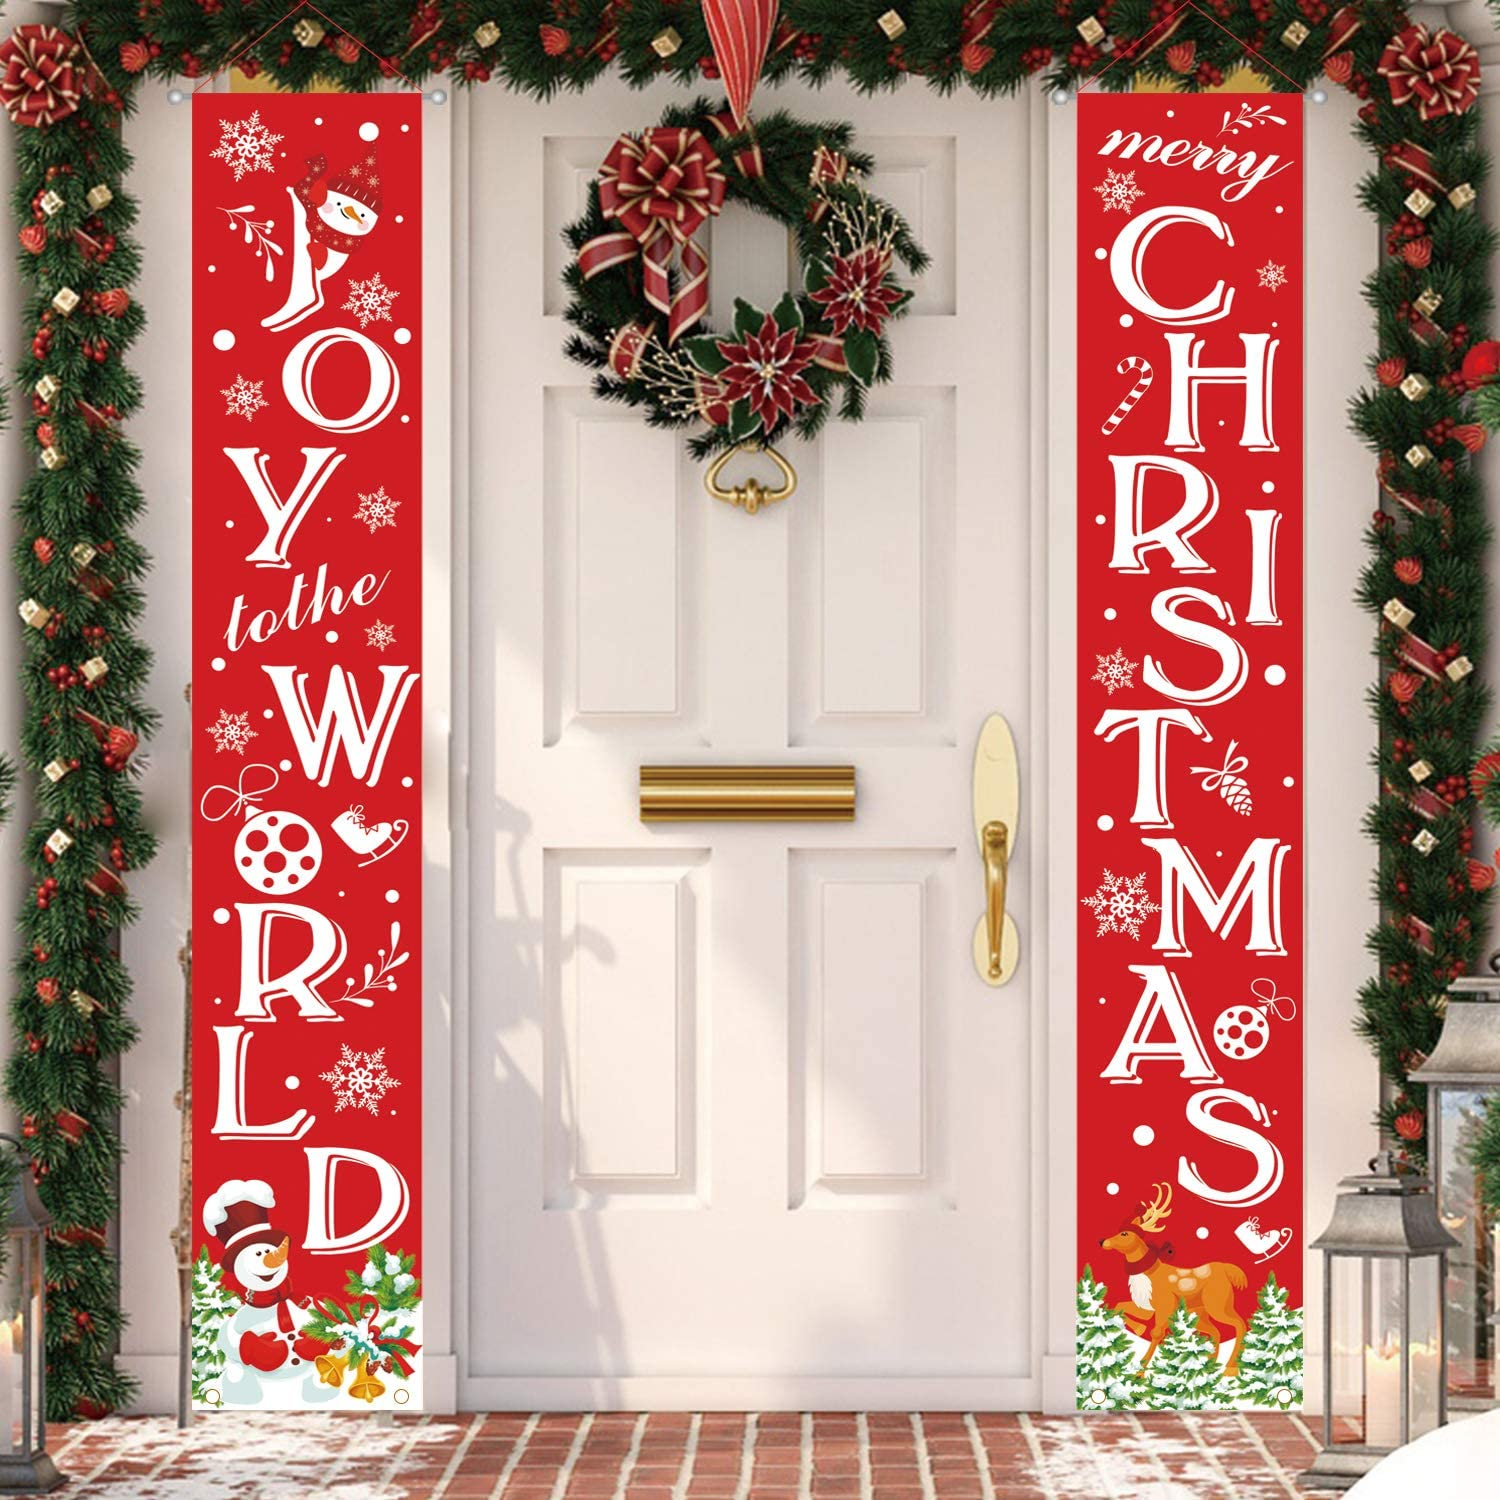 MAIAGO Christmas Decorations - Joy to The World & Merry Christmas Hanging Banners - Merry Christmas Porch Signs - Xmas Decor Banners for Indoor & Outdoor, Home, Wall, Front, Door, Apartment Party